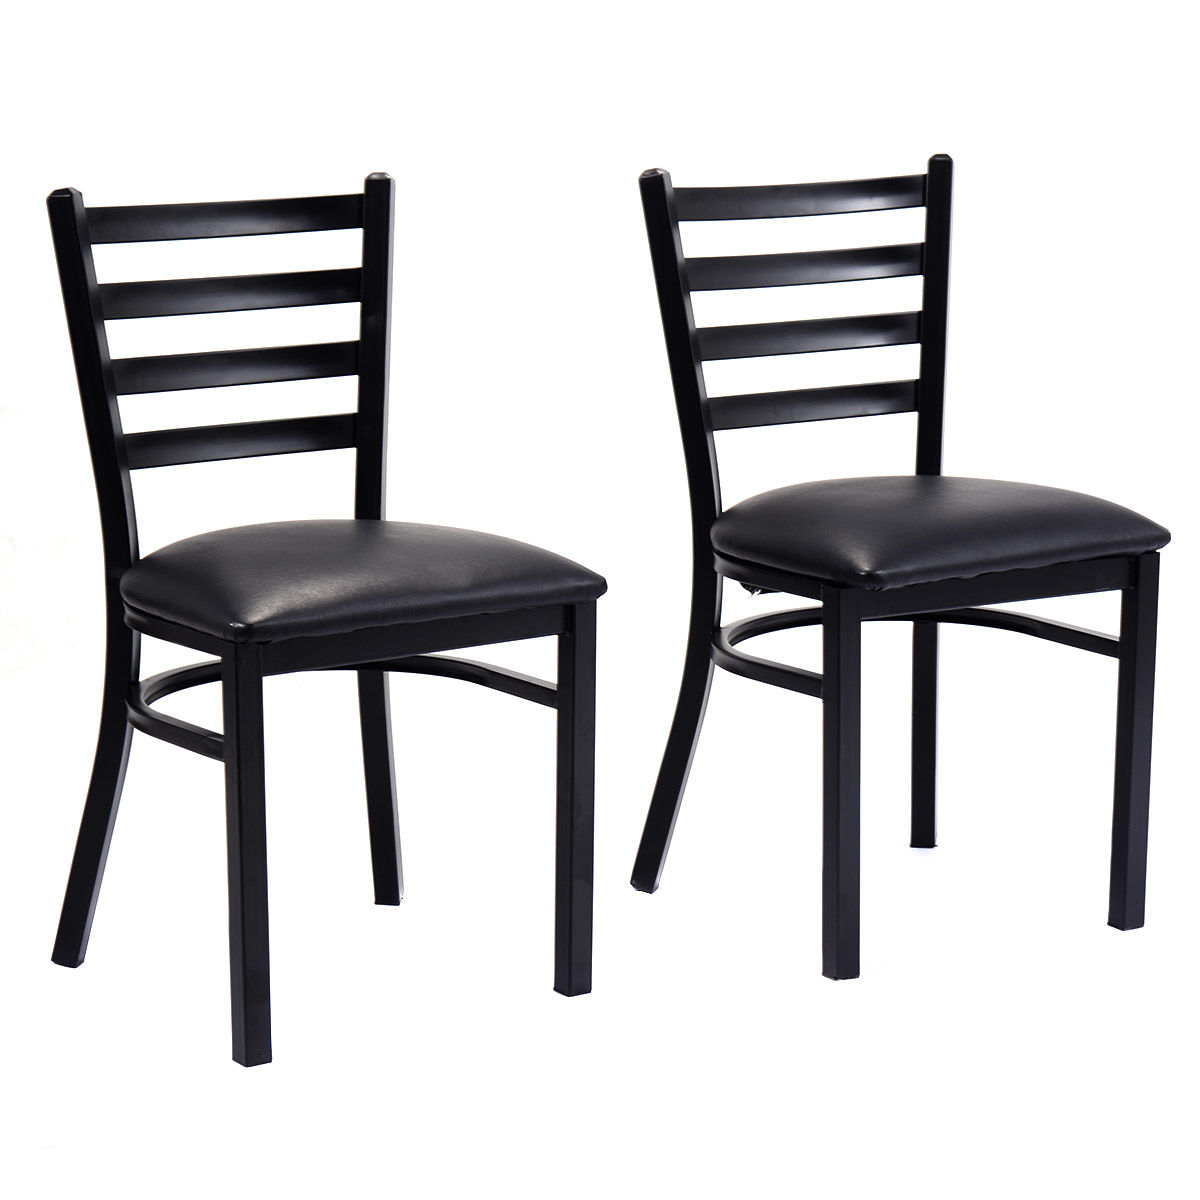 Costway Set of 2 Metal Dining Chairs Upholstered Home Kitchen Side Chair Furniture by Costway